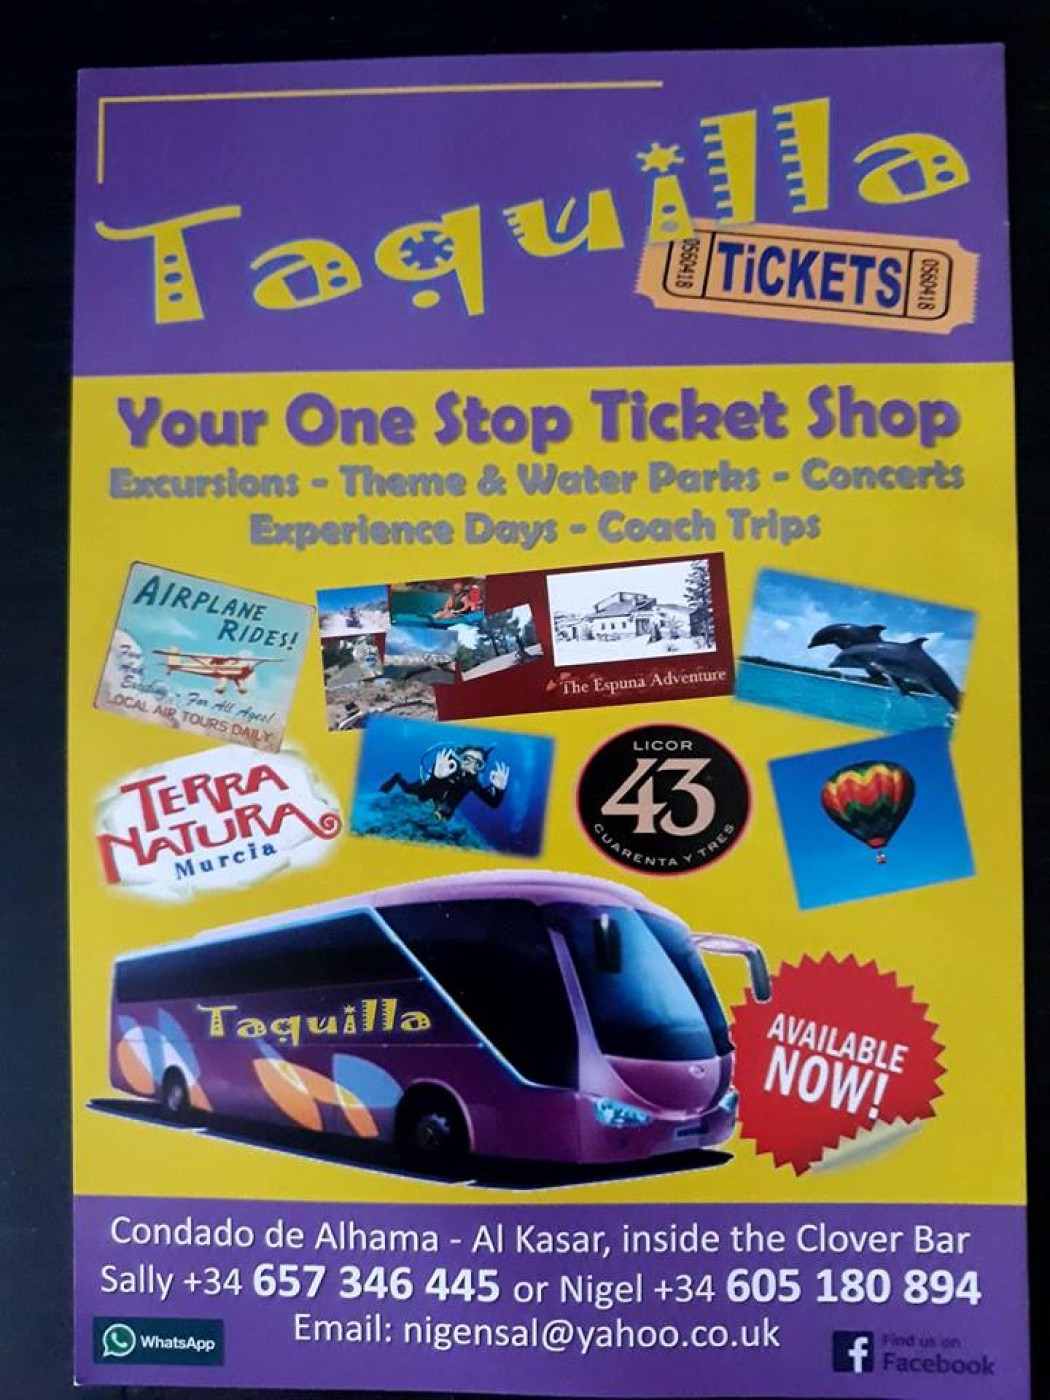 Taquilla Tickets